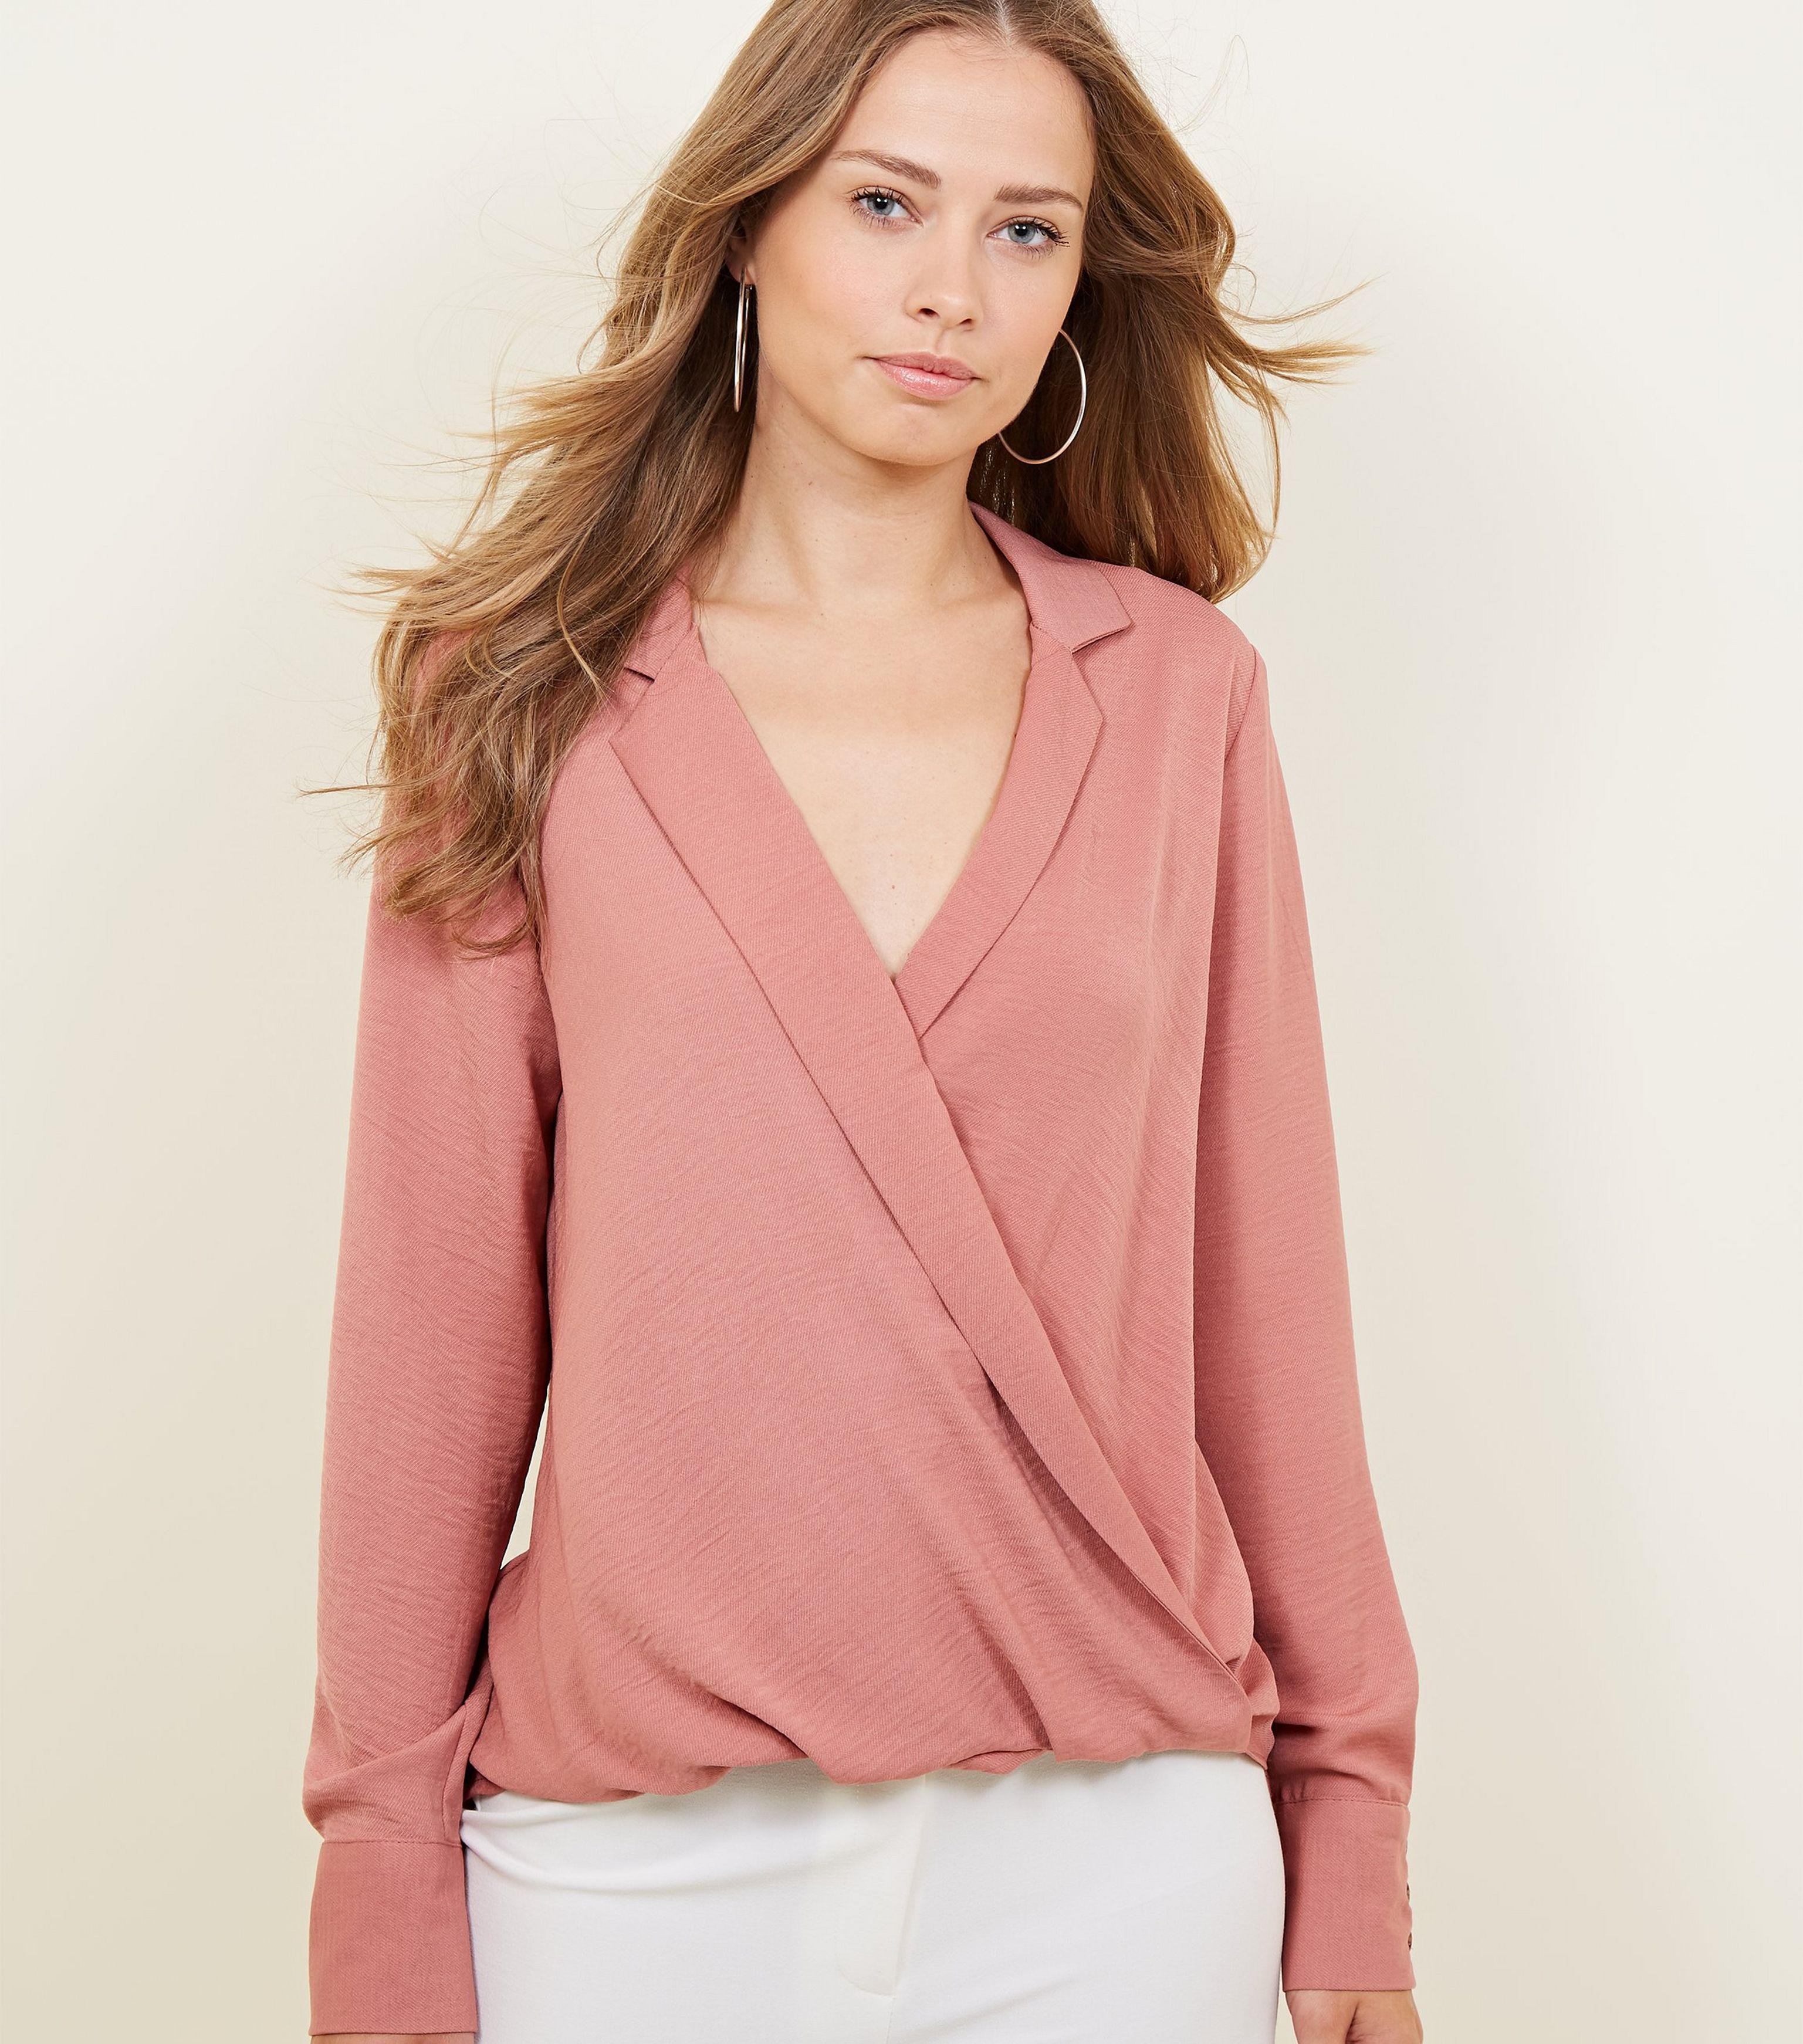 76d7d4594f973 New Look Pink Wrap Front Revere Collar Top in Pink - Lyst